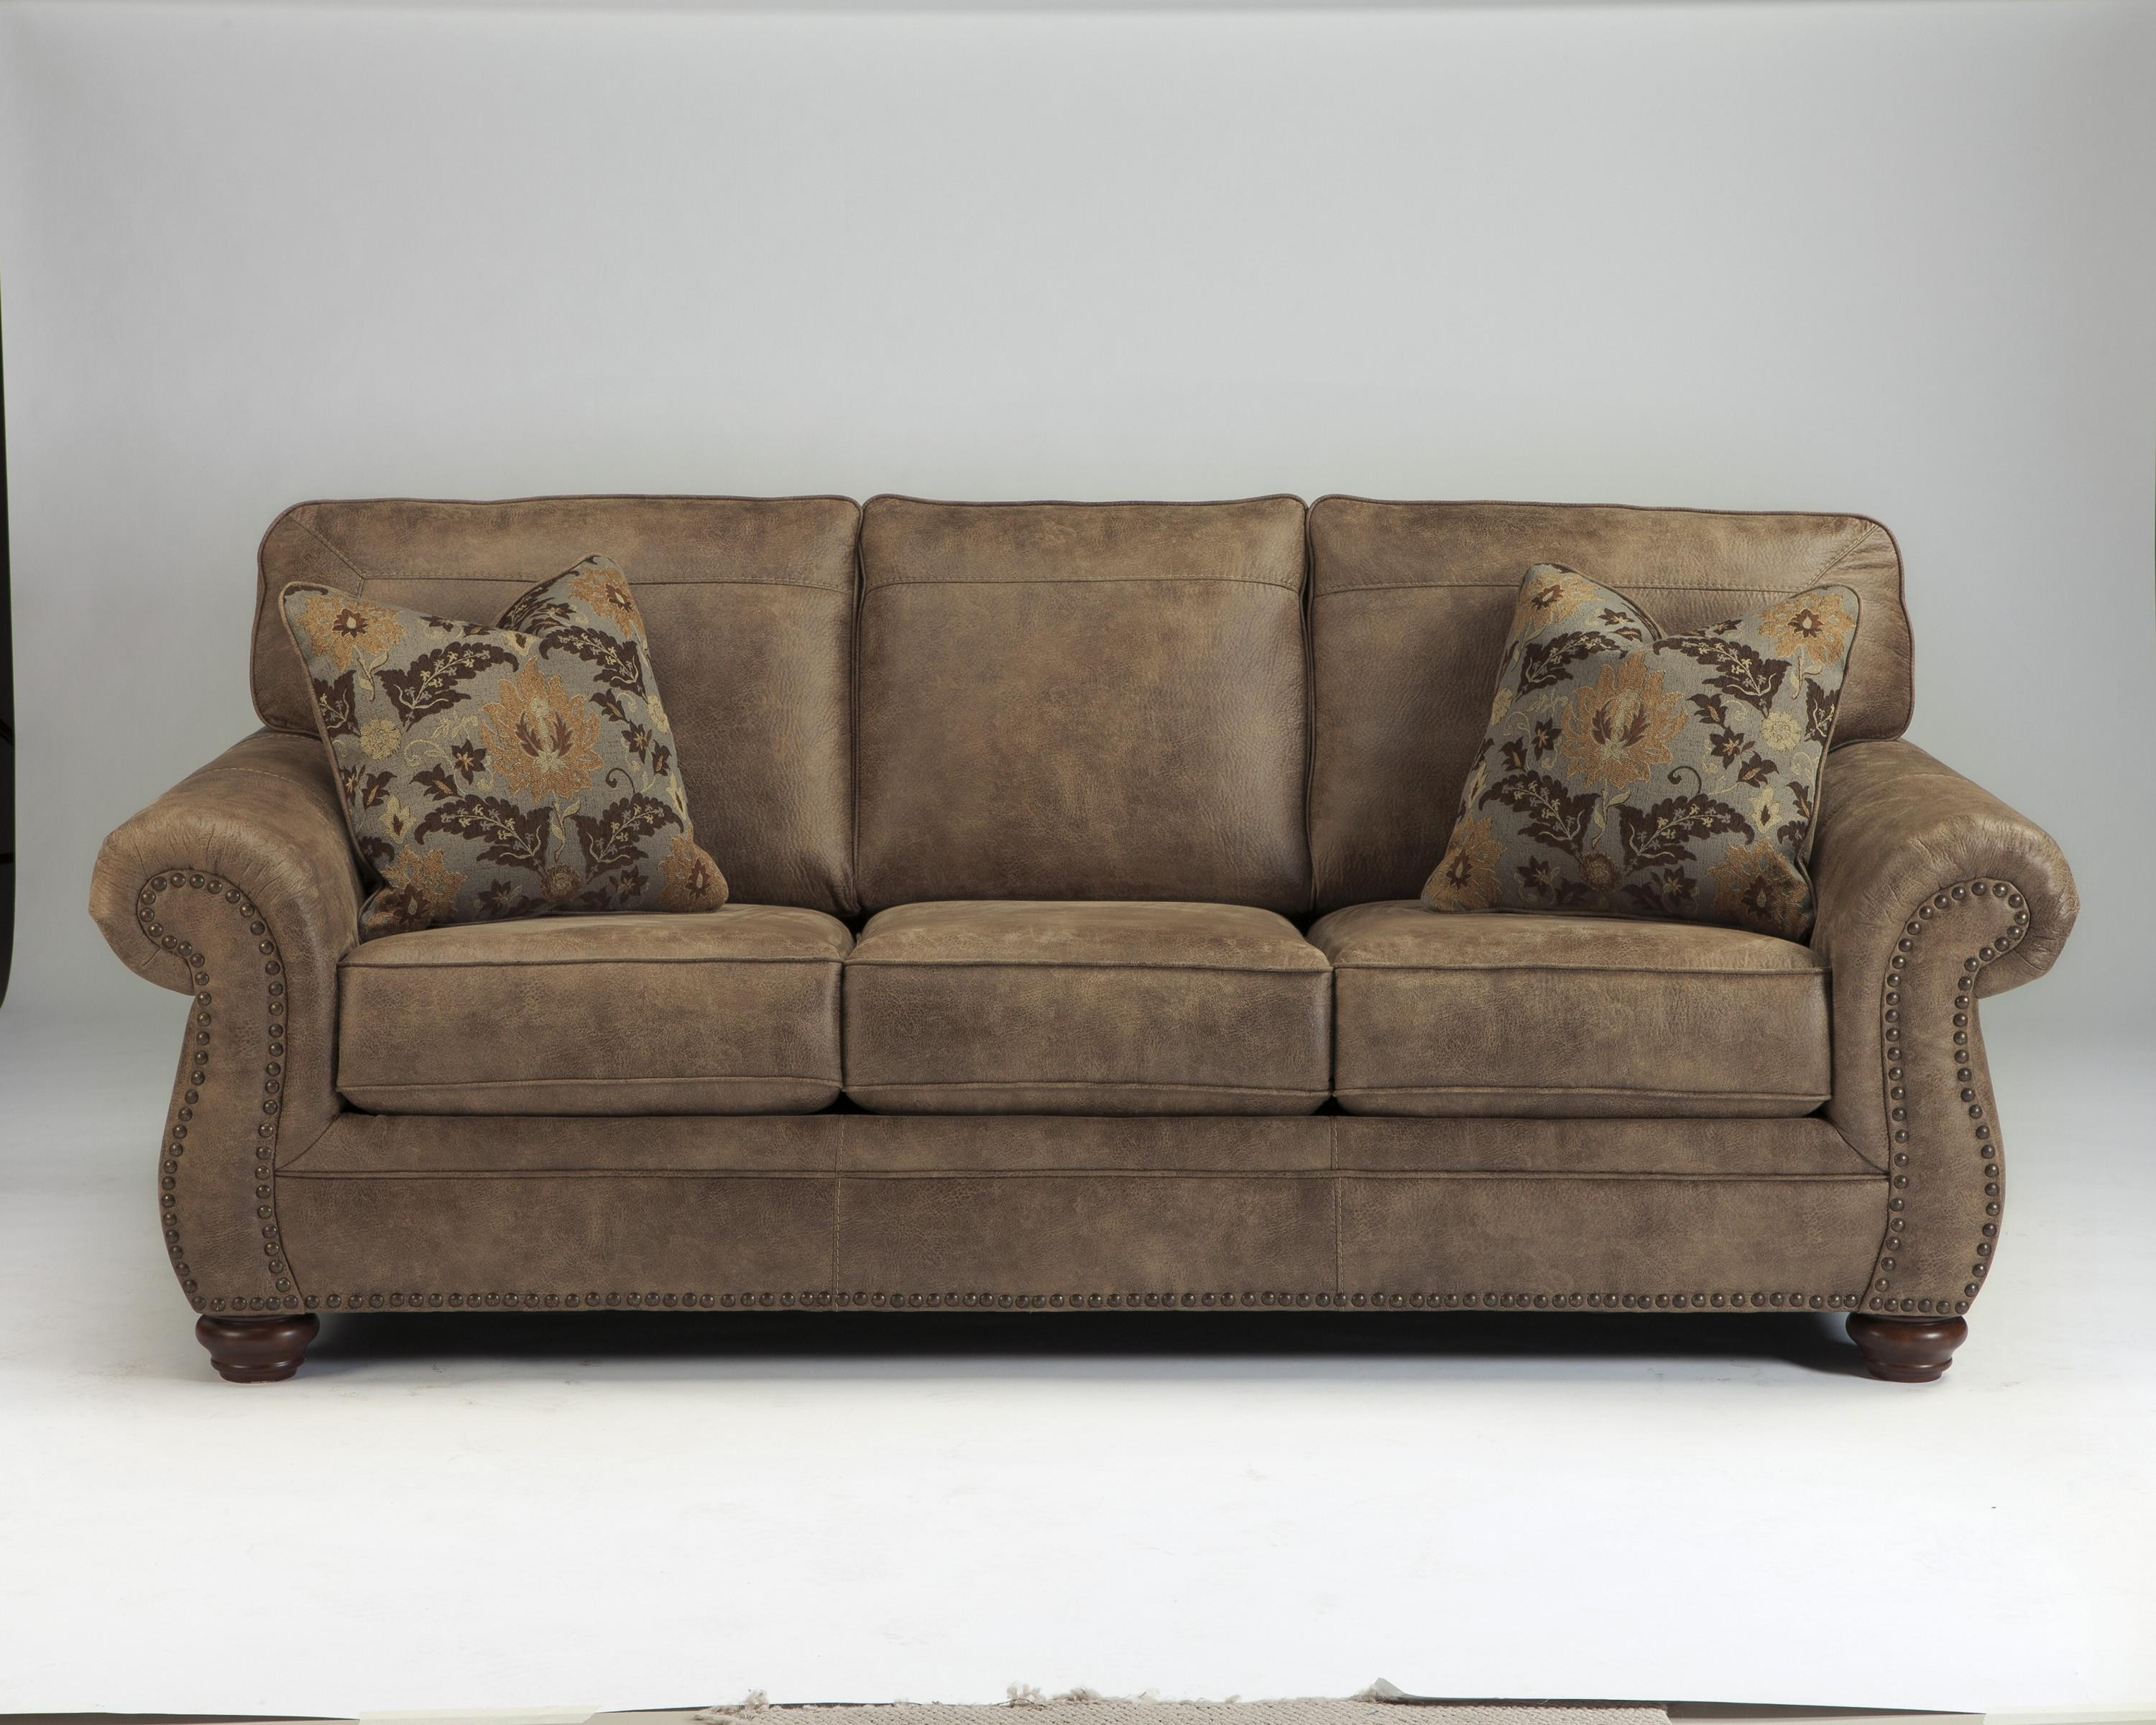 Fabric Sofas For Sale | Tehranmix Decoration Pertaining To Fabric Sofas (Image 13 of 20)